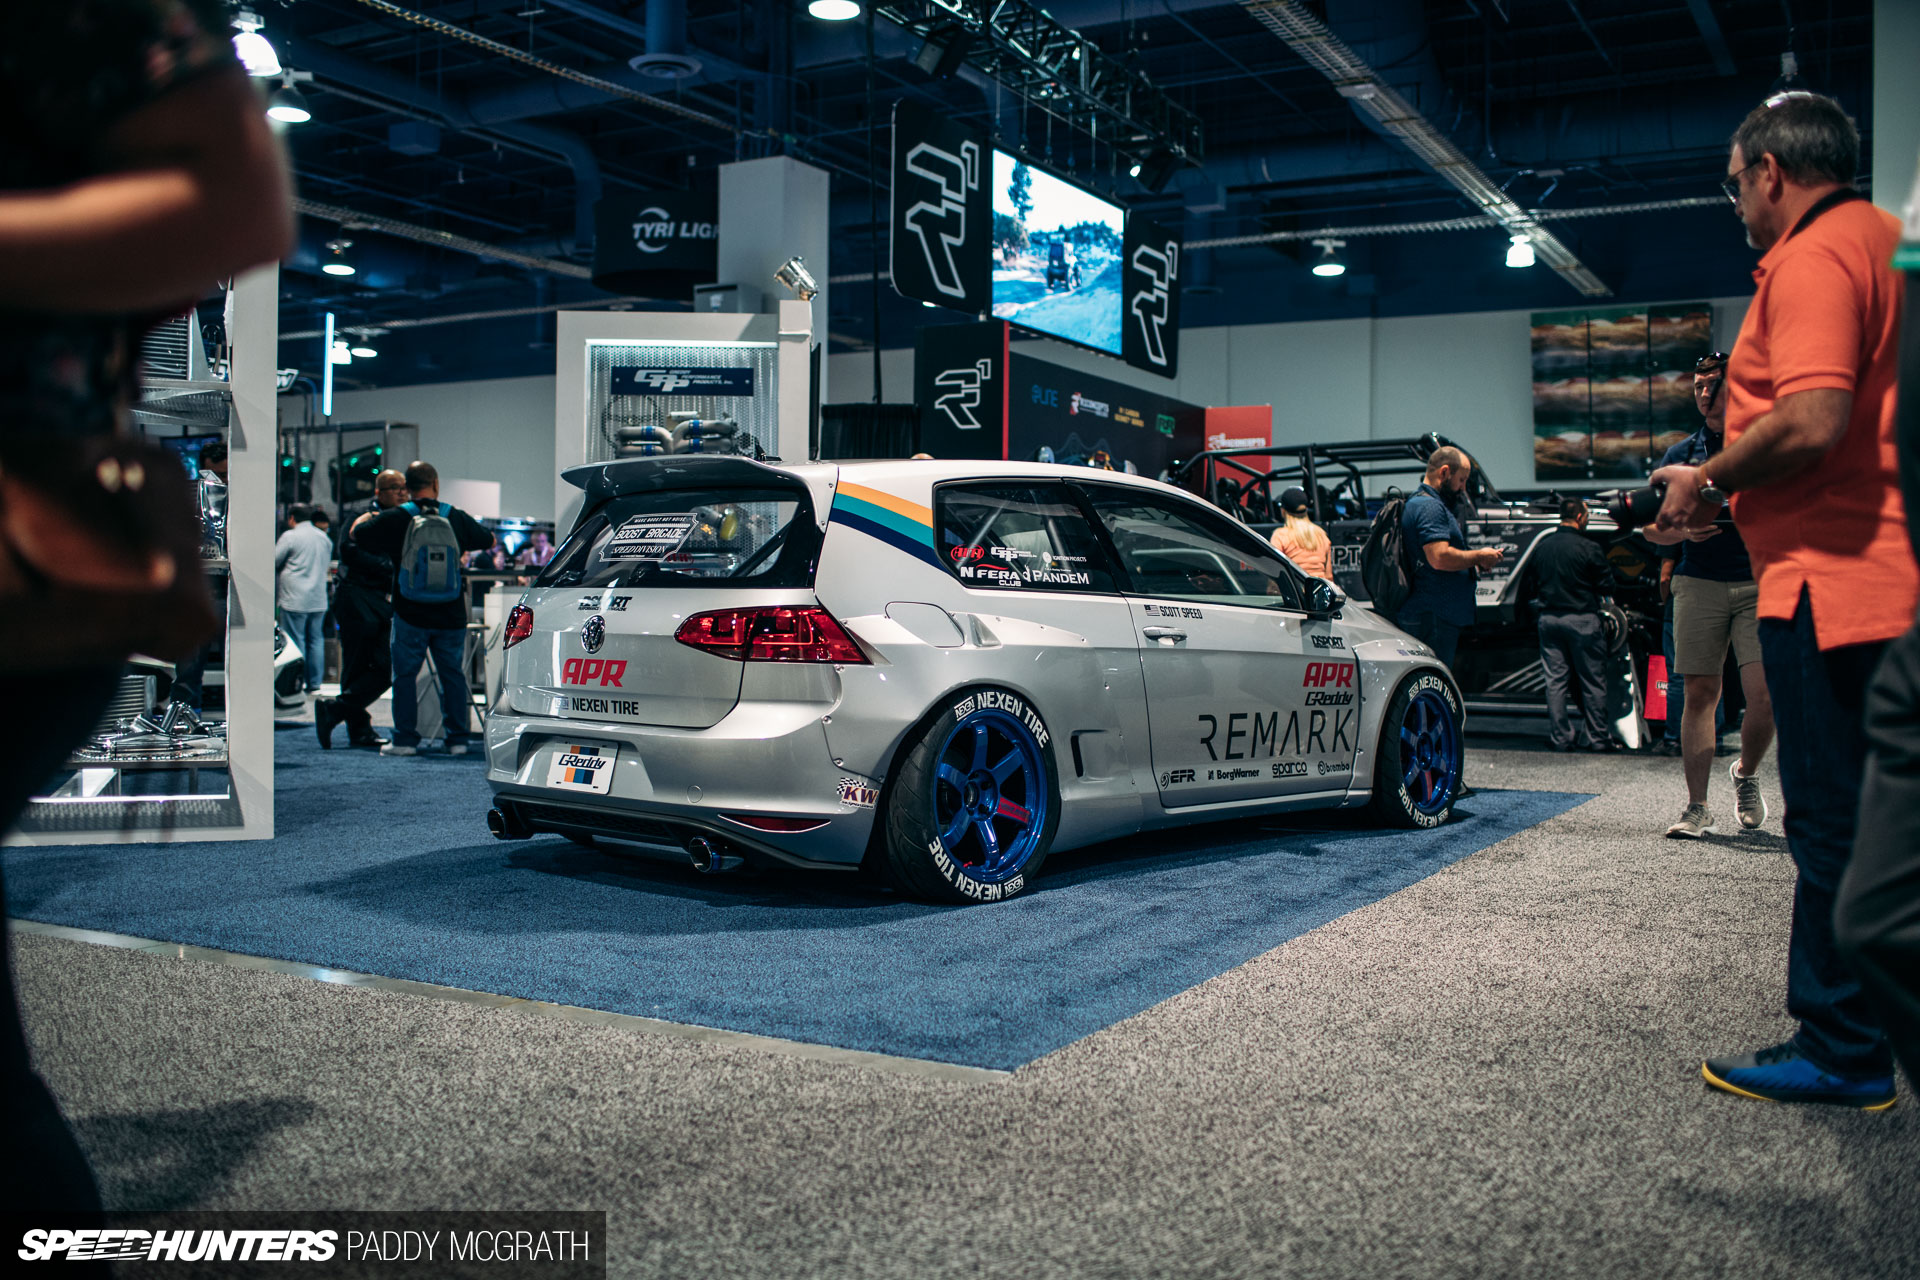 550hp & A Wide-Body That Works - Speedhunters